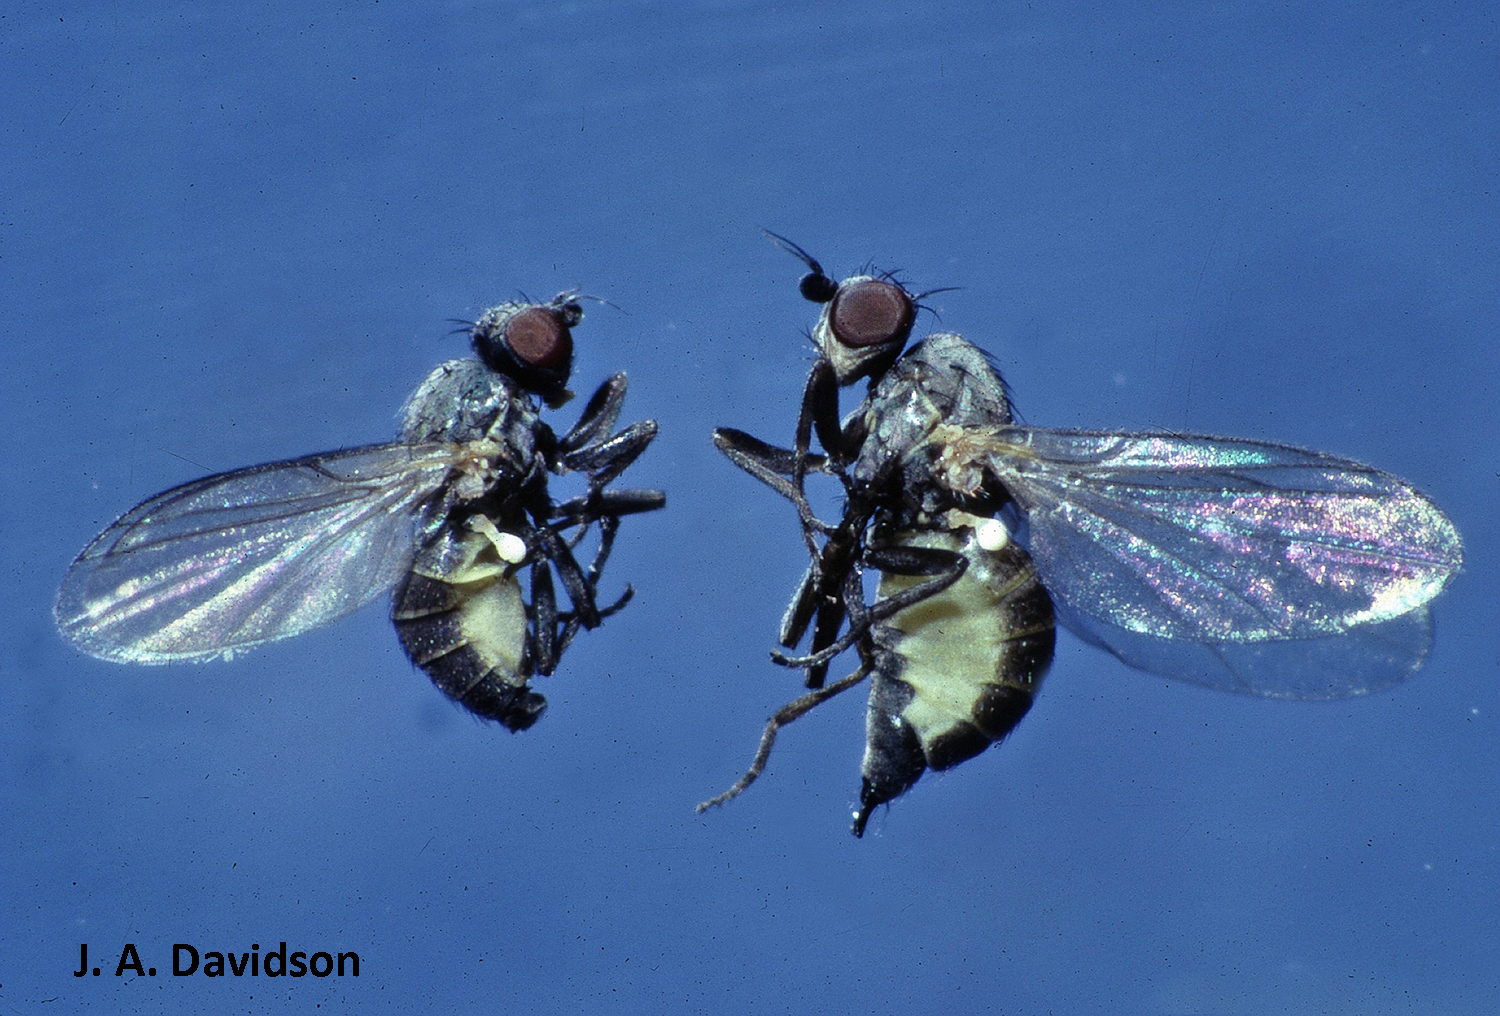 Adult holly leafminers resemble small houseflies. Image credit: J. A. Davidson